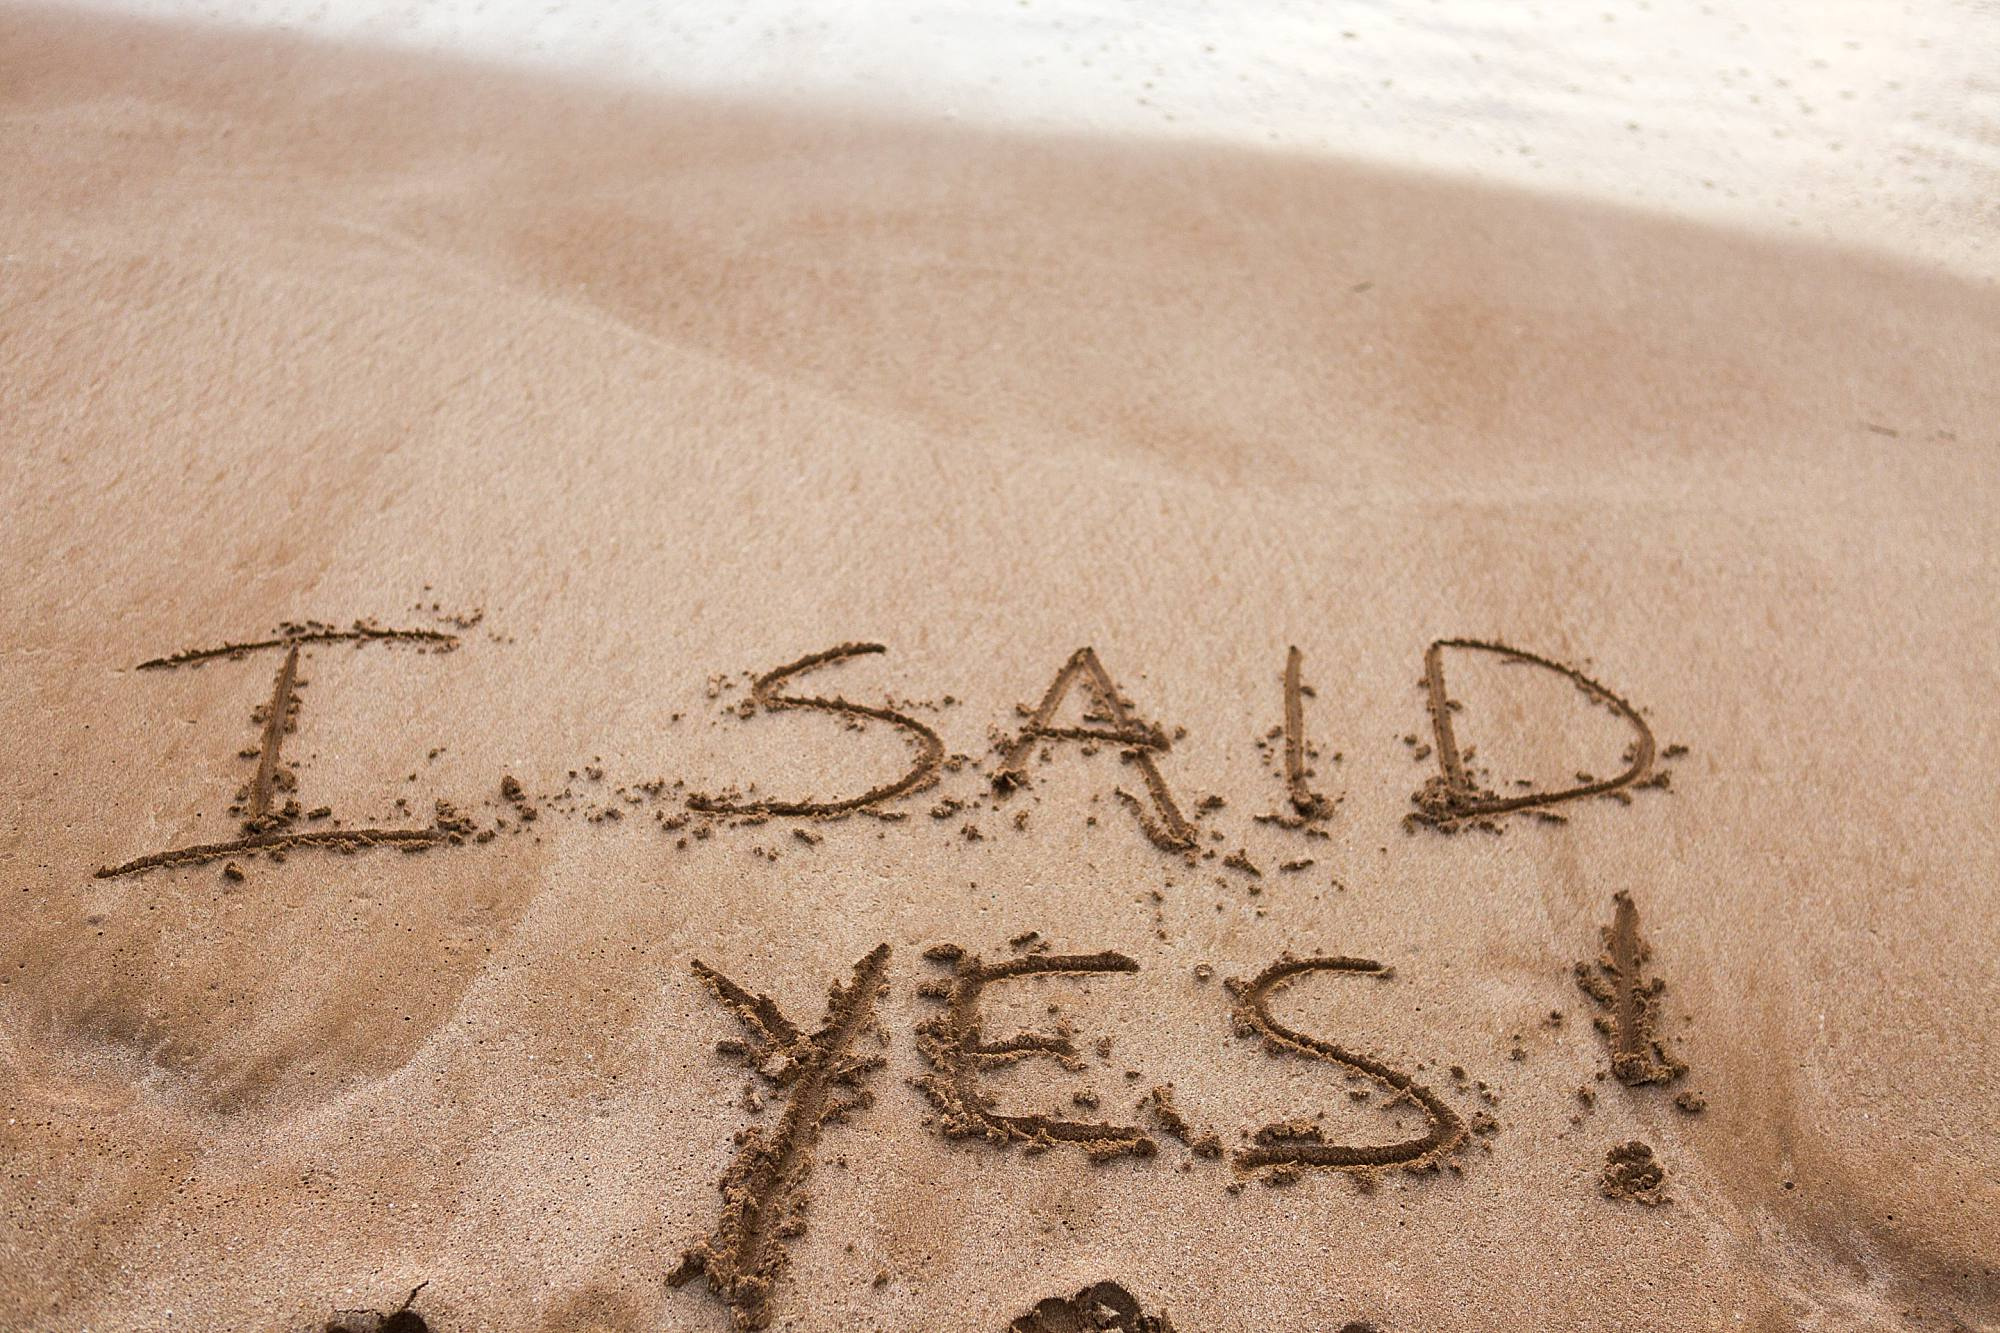 I said yes in the sand